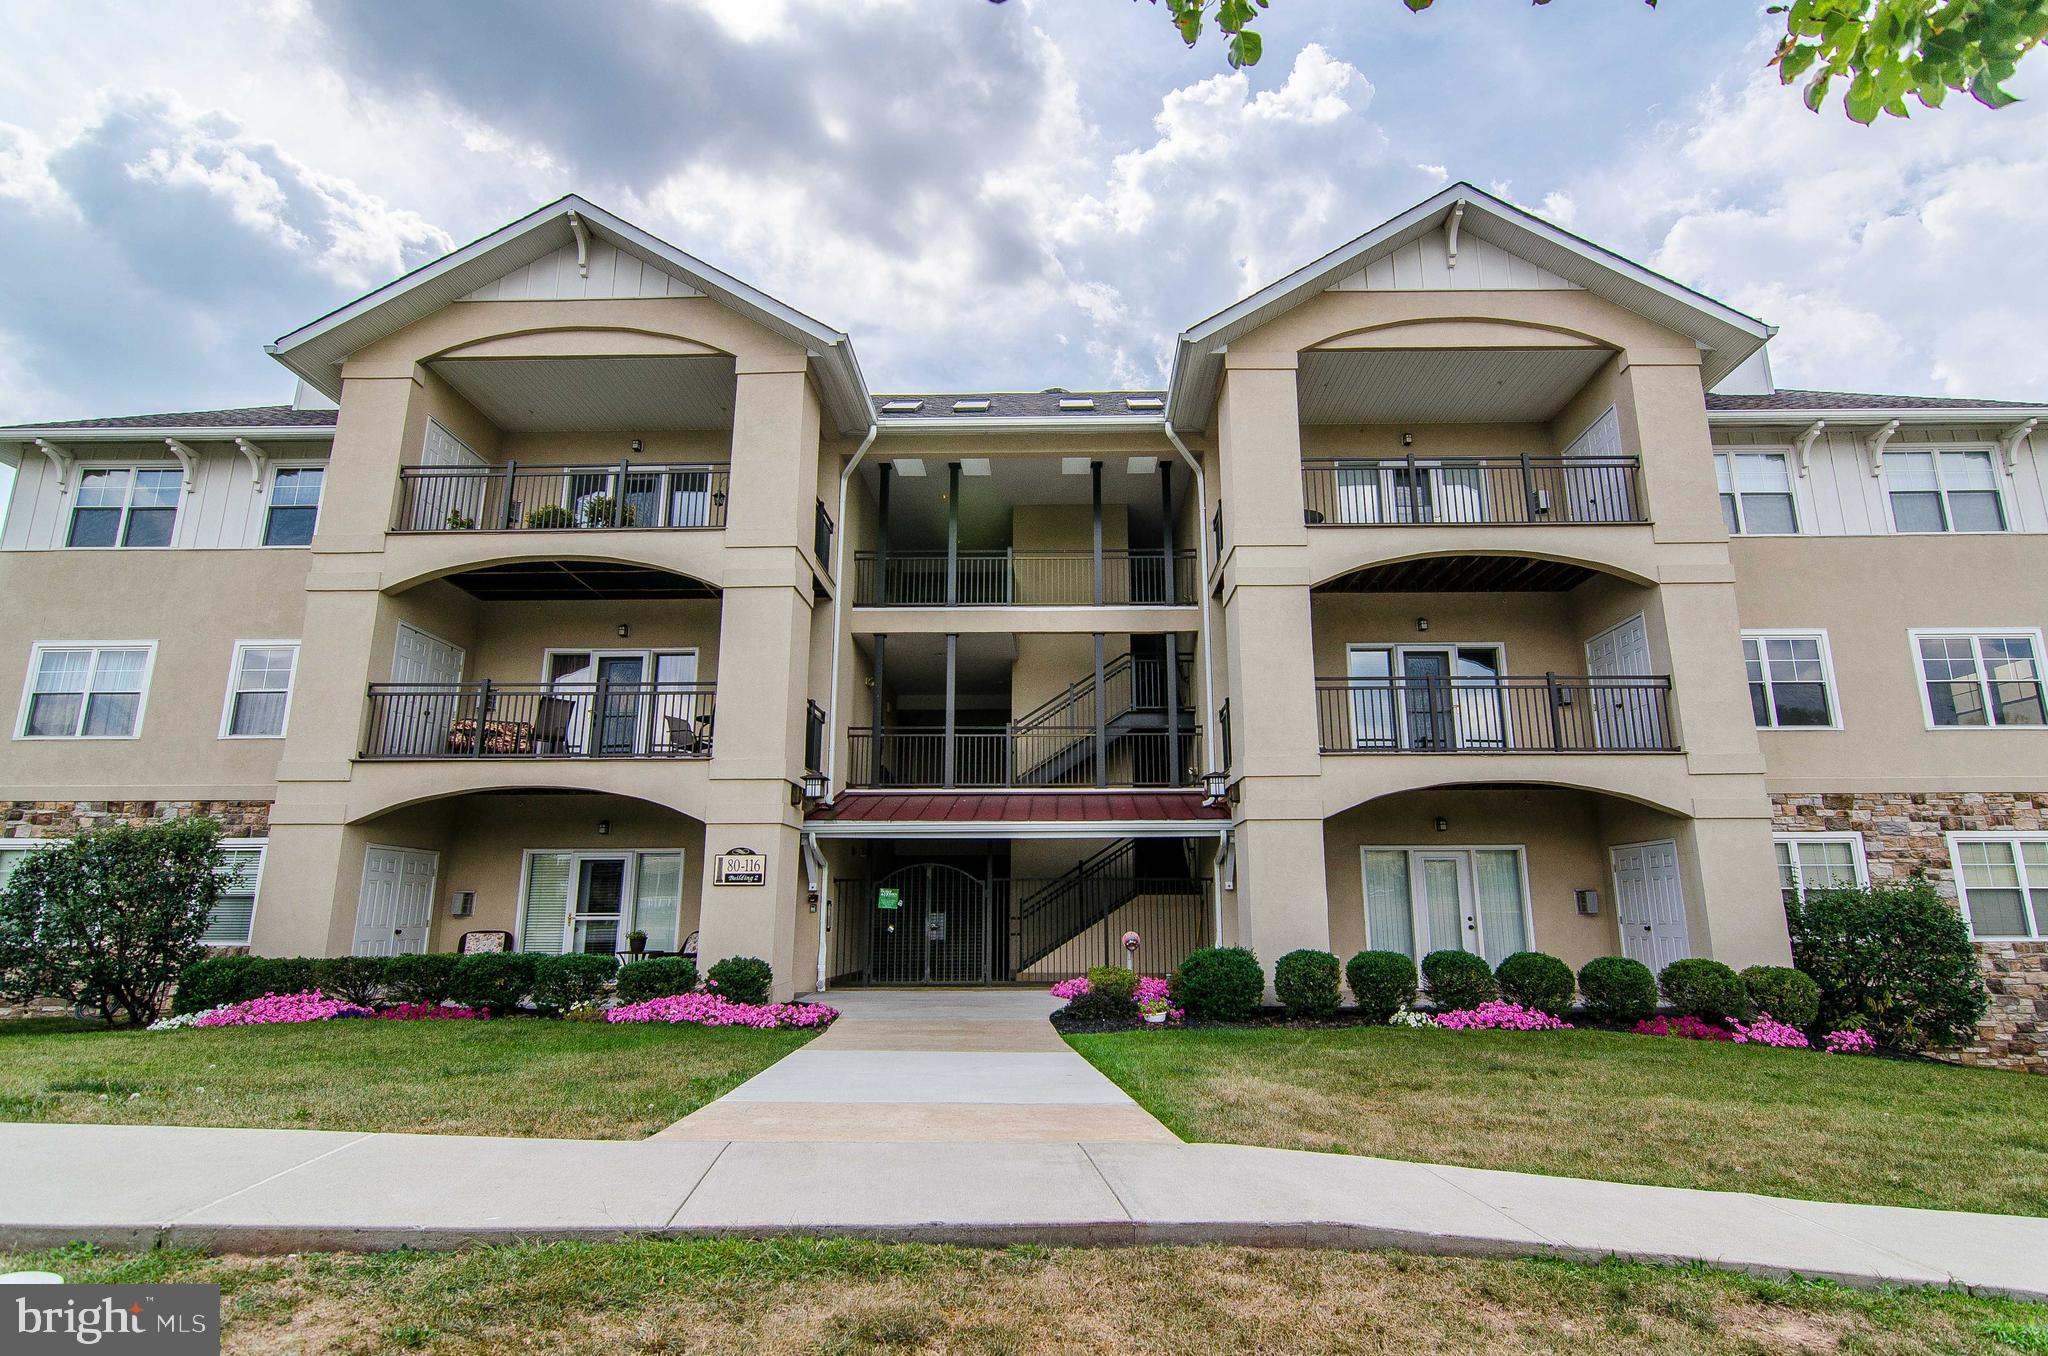 """First floor condo with updates galore! Located in the rolling hills of Chester County, Bucktown Crossing 55+ Condominiums have all you need to begin care-free living! Luxurious amenities include a secure underground parking area, full access elevator, on site storage, and secure gated entry to each building. This resale """"Bellewood"""" model, the largest unit in the community, has been recently upgraded and boasts an open concept floor plan perfect for entertaining - hardwood foyer, 9' ceilings, large kitchen with granite countertops, tile backsplash, breakfast bar, and large pantry closet, dining area with crown molding, and living room with corner gas fireplace and walk-out to the private rear balcony. The master bedroom has a large walk-in closet, wall-to-wall windows offering lots of natural light, and an en-suite bath with dual  vanity and walk-in quartz-surround shower with seamless glass door. Finishing out the unit is a spacious guest room with a double closet, full hall bath with tub, in-unit washer/dryer closet, and plenty of storage space. There is a beautifully furnished clubhouse with a card room, full kitchen, social room with fireplace, and fitness room, as well as an outdoor recreation area, including a heated pool, tennis courts, and picnic pavilion w/ grills.  The exterior is getting a facelift and this building is currently getting all new windows and siding! Just minutes from 422 and the PA Turnpike, and a 30 minute ride to West Chester and King of Prussia, you will enjoy the beautiful countryside in the most convenient way!"""